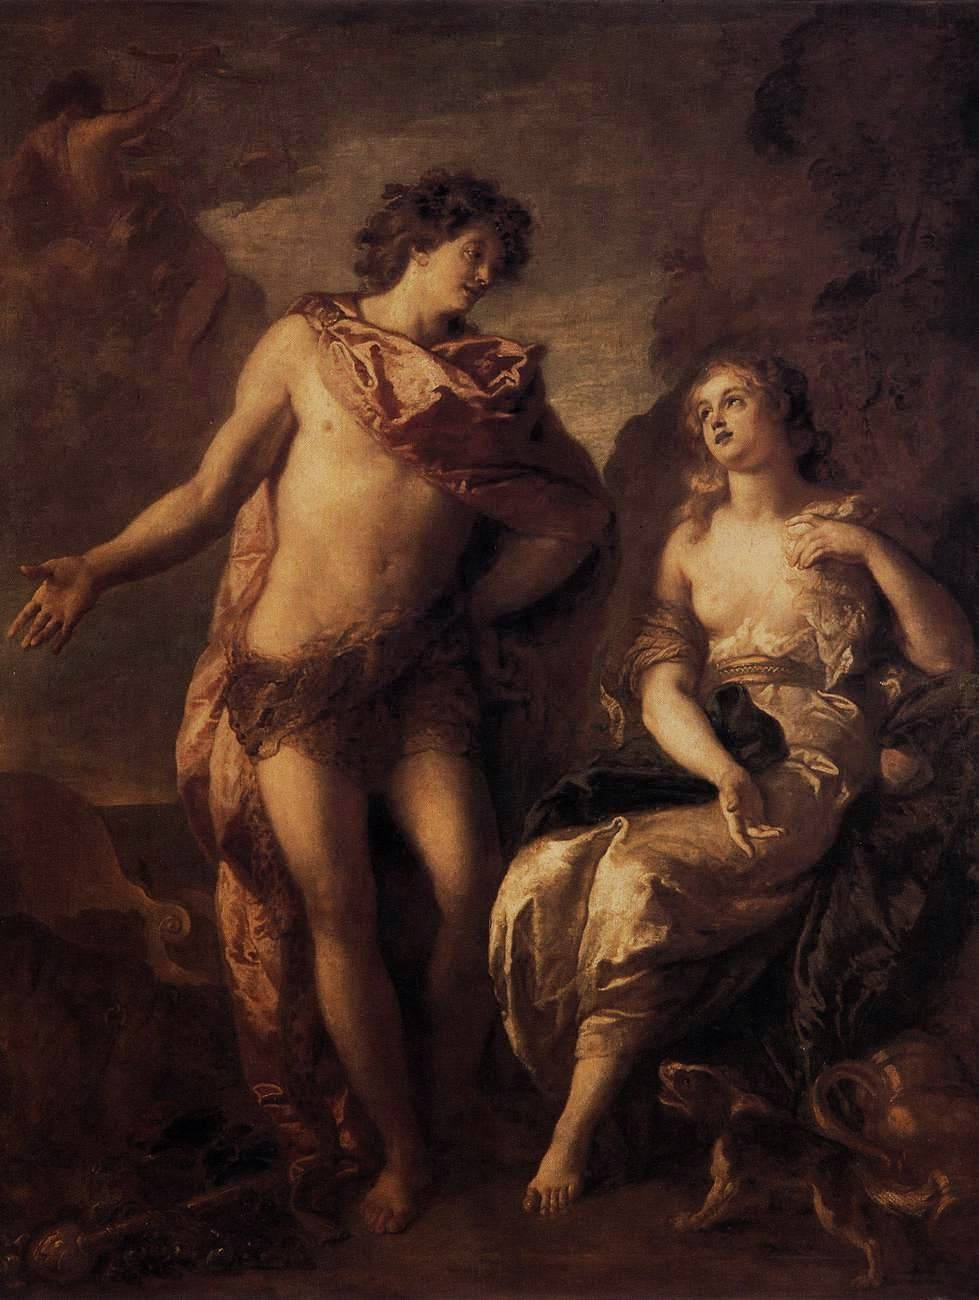 theseus and hercules relationship with other gods